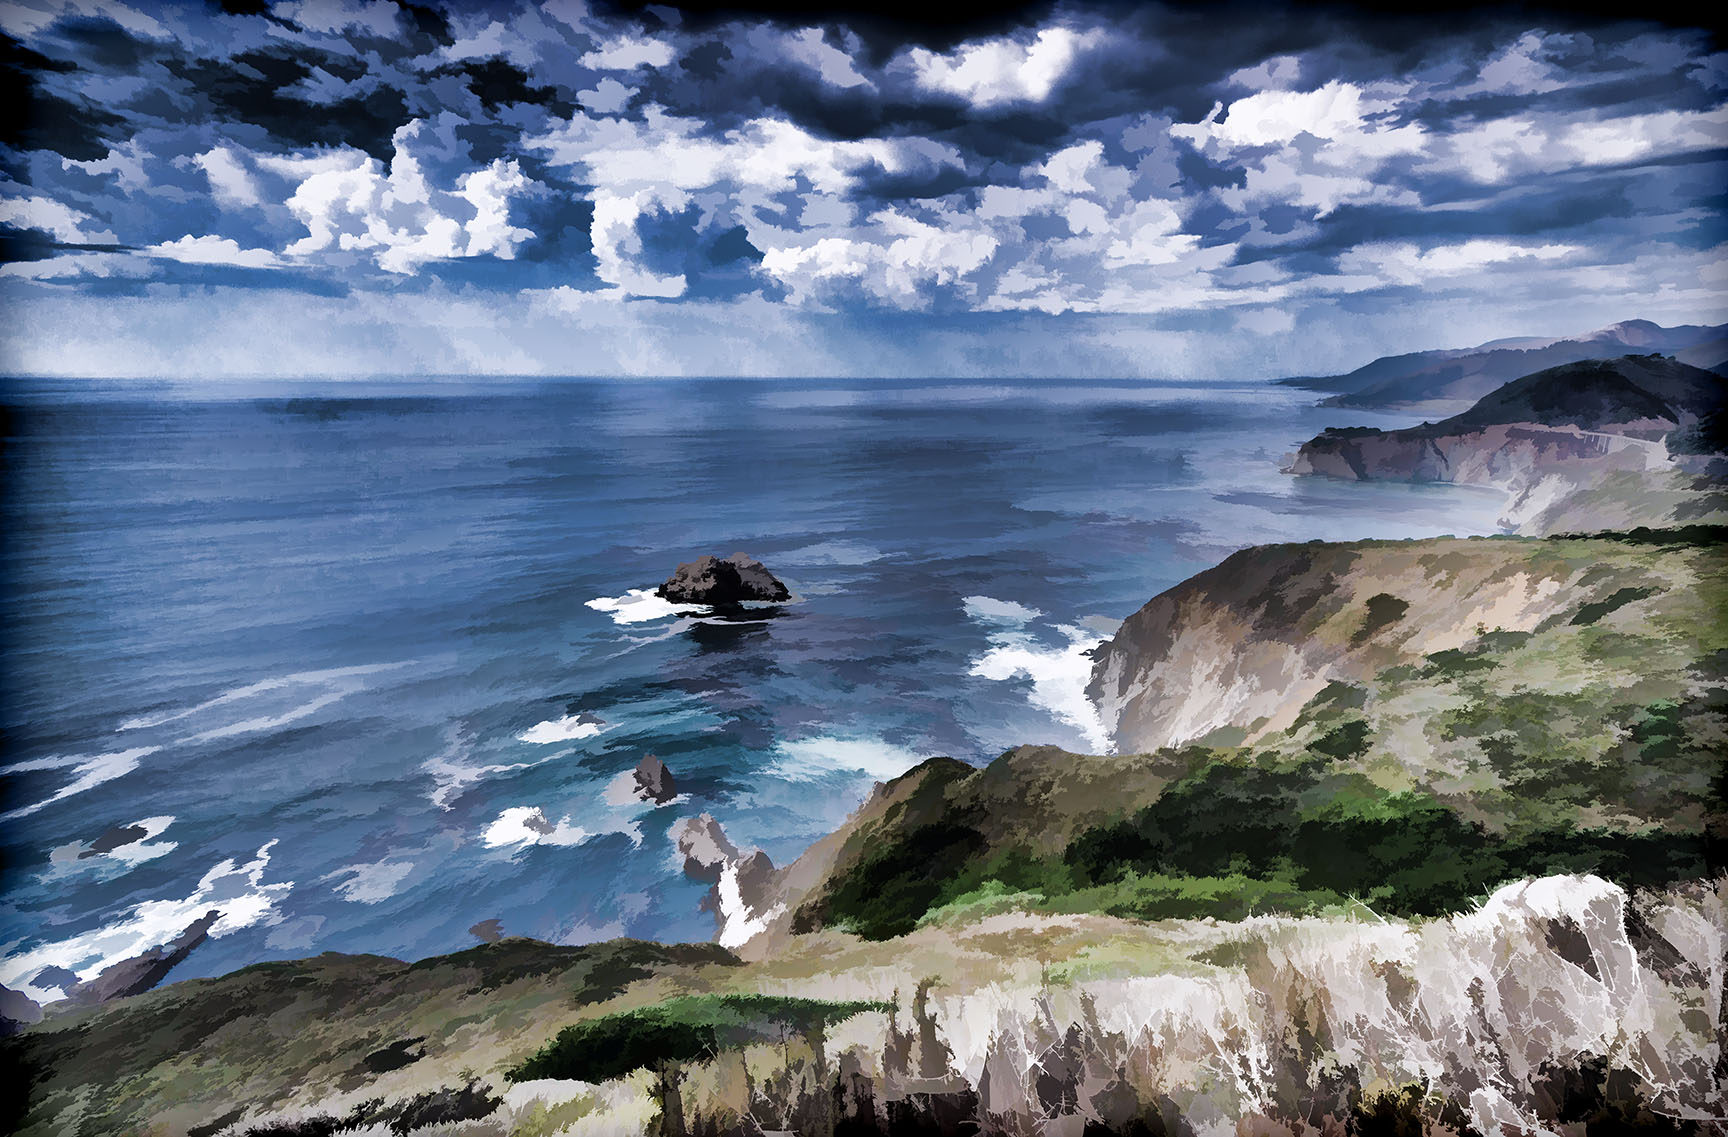 #topazlabs, #simplify, #processing, #montereybay, #bigsur, #routeone, #route1, #seascape, #california, #westcoast, #hurricanepoint